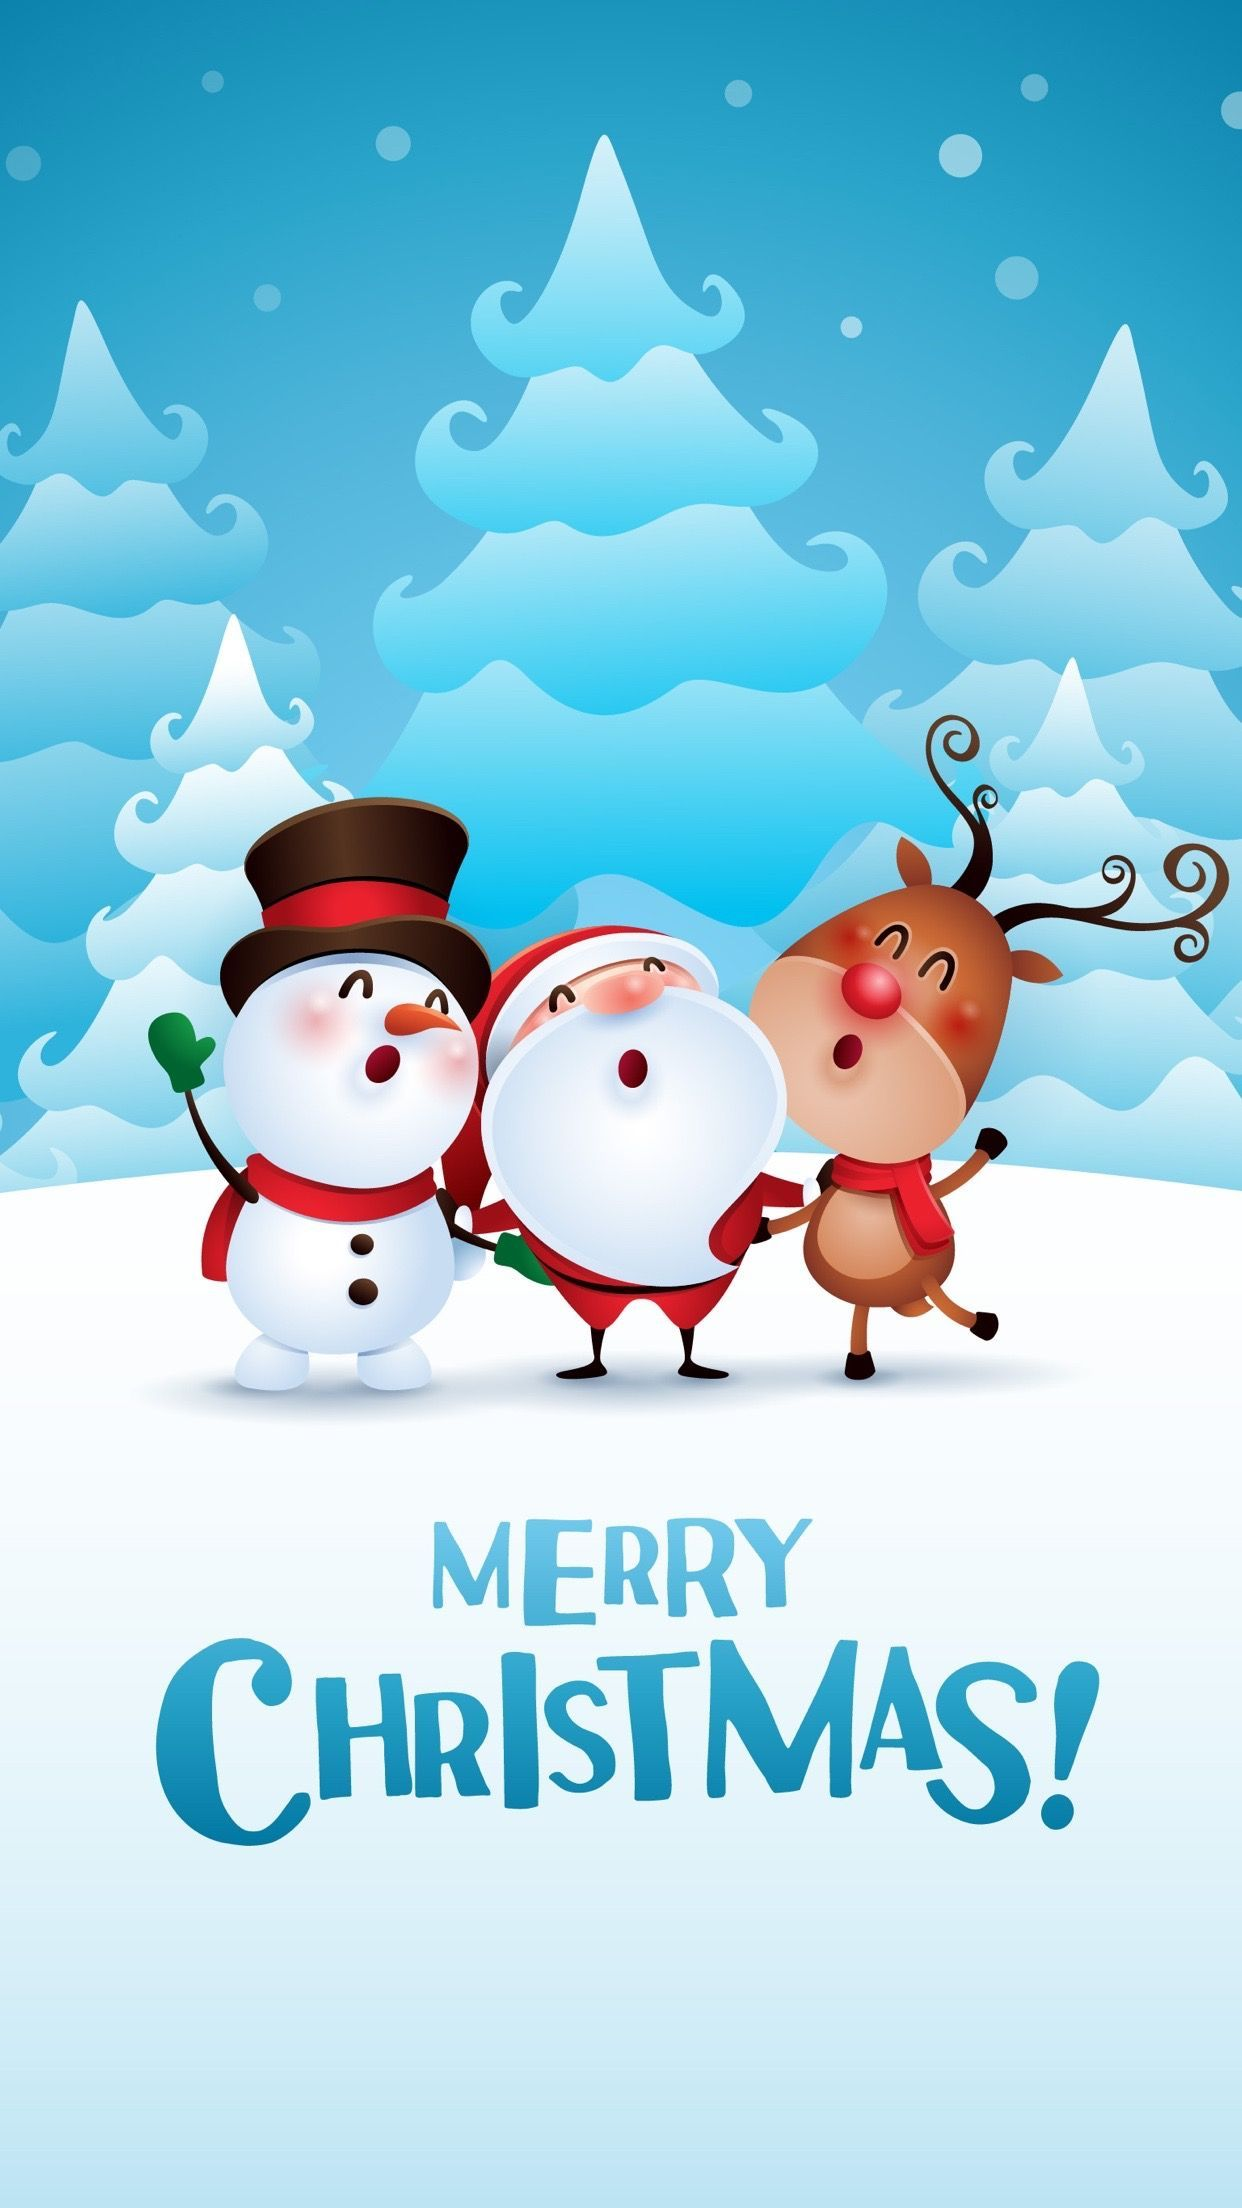 Christmas Iphone Wallpaper.Merry Christmas Iphone Wallpapers Top Free Merry Christmas